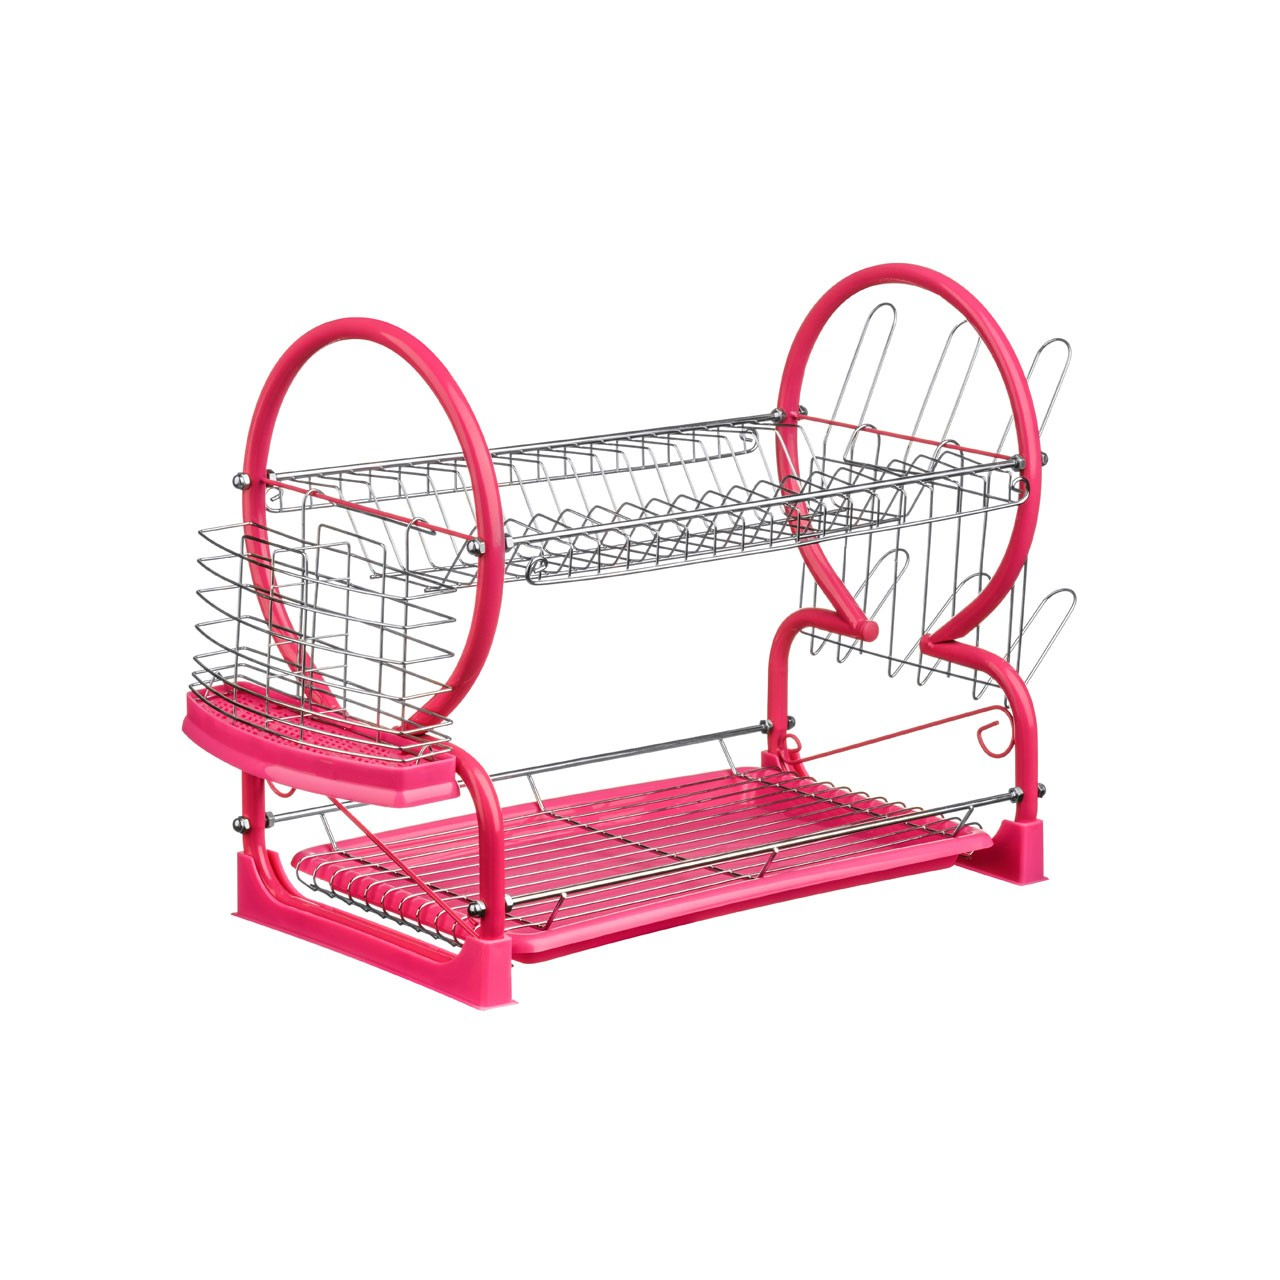 2-Tier Dish Drainer - Hot Pink